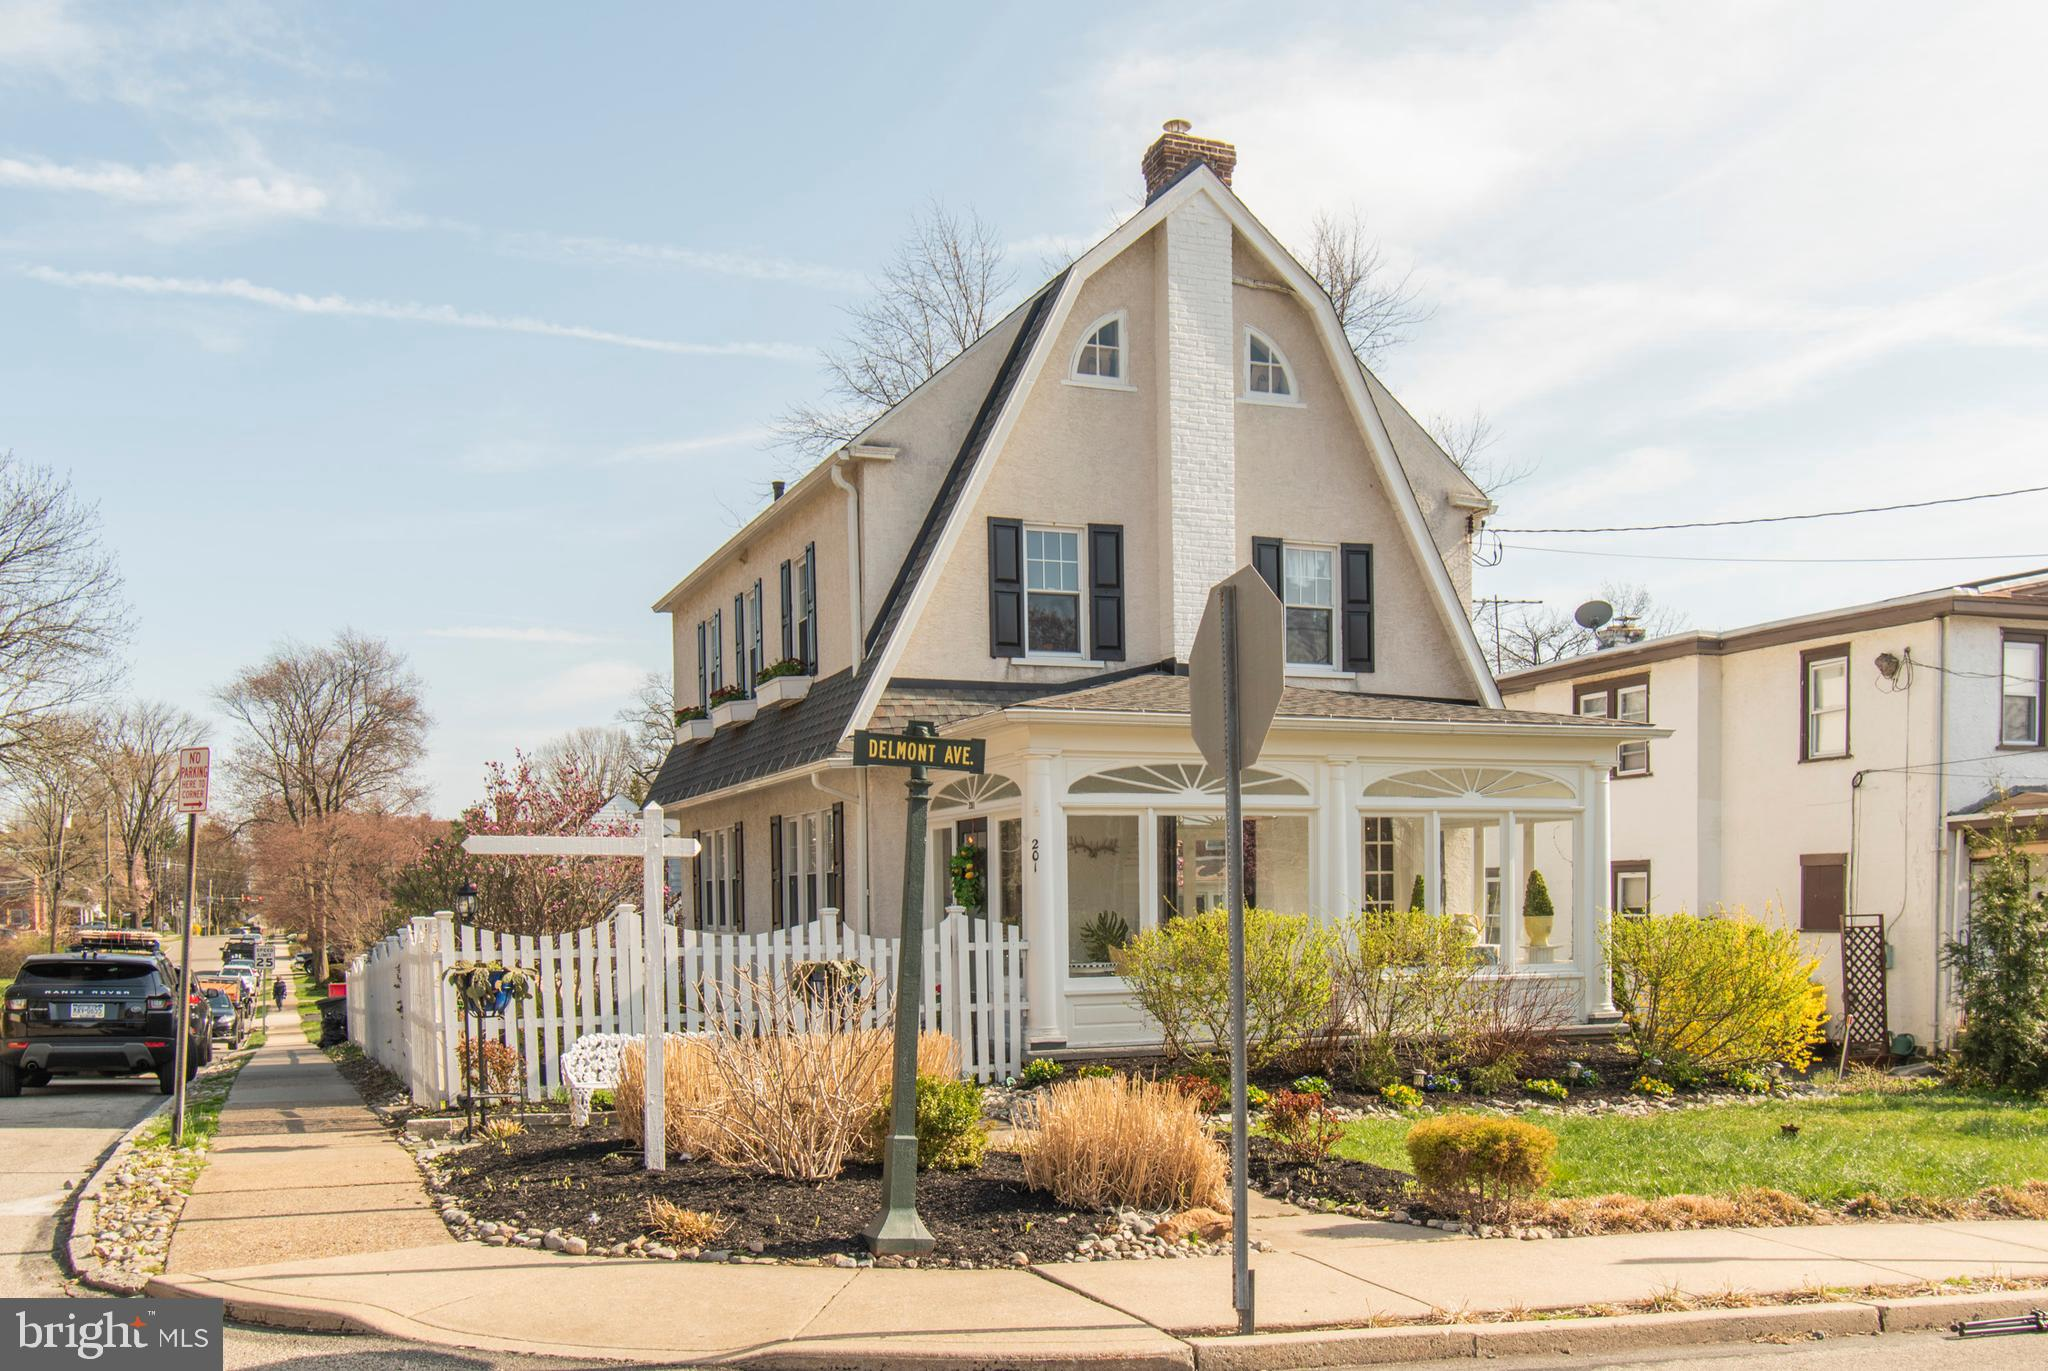 This luxurious Dutch colonial features impeccable finishes throughout, from beautiful original hardwood floors to a gorgeous antique brick fireplace. The newly updated interiors features a soft monochromatic palette and clean lines, and outside the beautifully landscaped lot is the work of art of a dedicated gardener. The spacious back patio is perfect for having a cocktail or( three )and watching the sunset after a long day at work. This perfectly located stunning Ardmore home offers both a convenient walk to everything location: Carlinos, Whole Foods, Trader Joe's, Tired Hands, Ardmore Music Hall, Suburban Square, parks and train stations  while being nestled on a quiet street.  This 5 bedroom, 2 and a half bathroom property has been loving cared for. Gorgeous hardwood floors flow throughout the sunlit home. The spacious enclosed porch with double french doors leads into the beautiful open concept living, dining and brand new kitchen space which are great for entertaining. The entire 1st floor overlooks the amazing grounds drenched with beautiful flowers.    The charming feel of the home extends upstairs to a peaceful master bedroom retreat with his and hers closets complete with updated bath and shower. The second floor features four sunny bedrooms with ample closet space and a hall bath. Completing this gem is a finished basement, which offers additional entertainment space and there is also a two car detached garage. The home is located in the award- winning Lower Merion School District and is easily accessible to King of Prussia, Center City Philadelphia, and major highways.